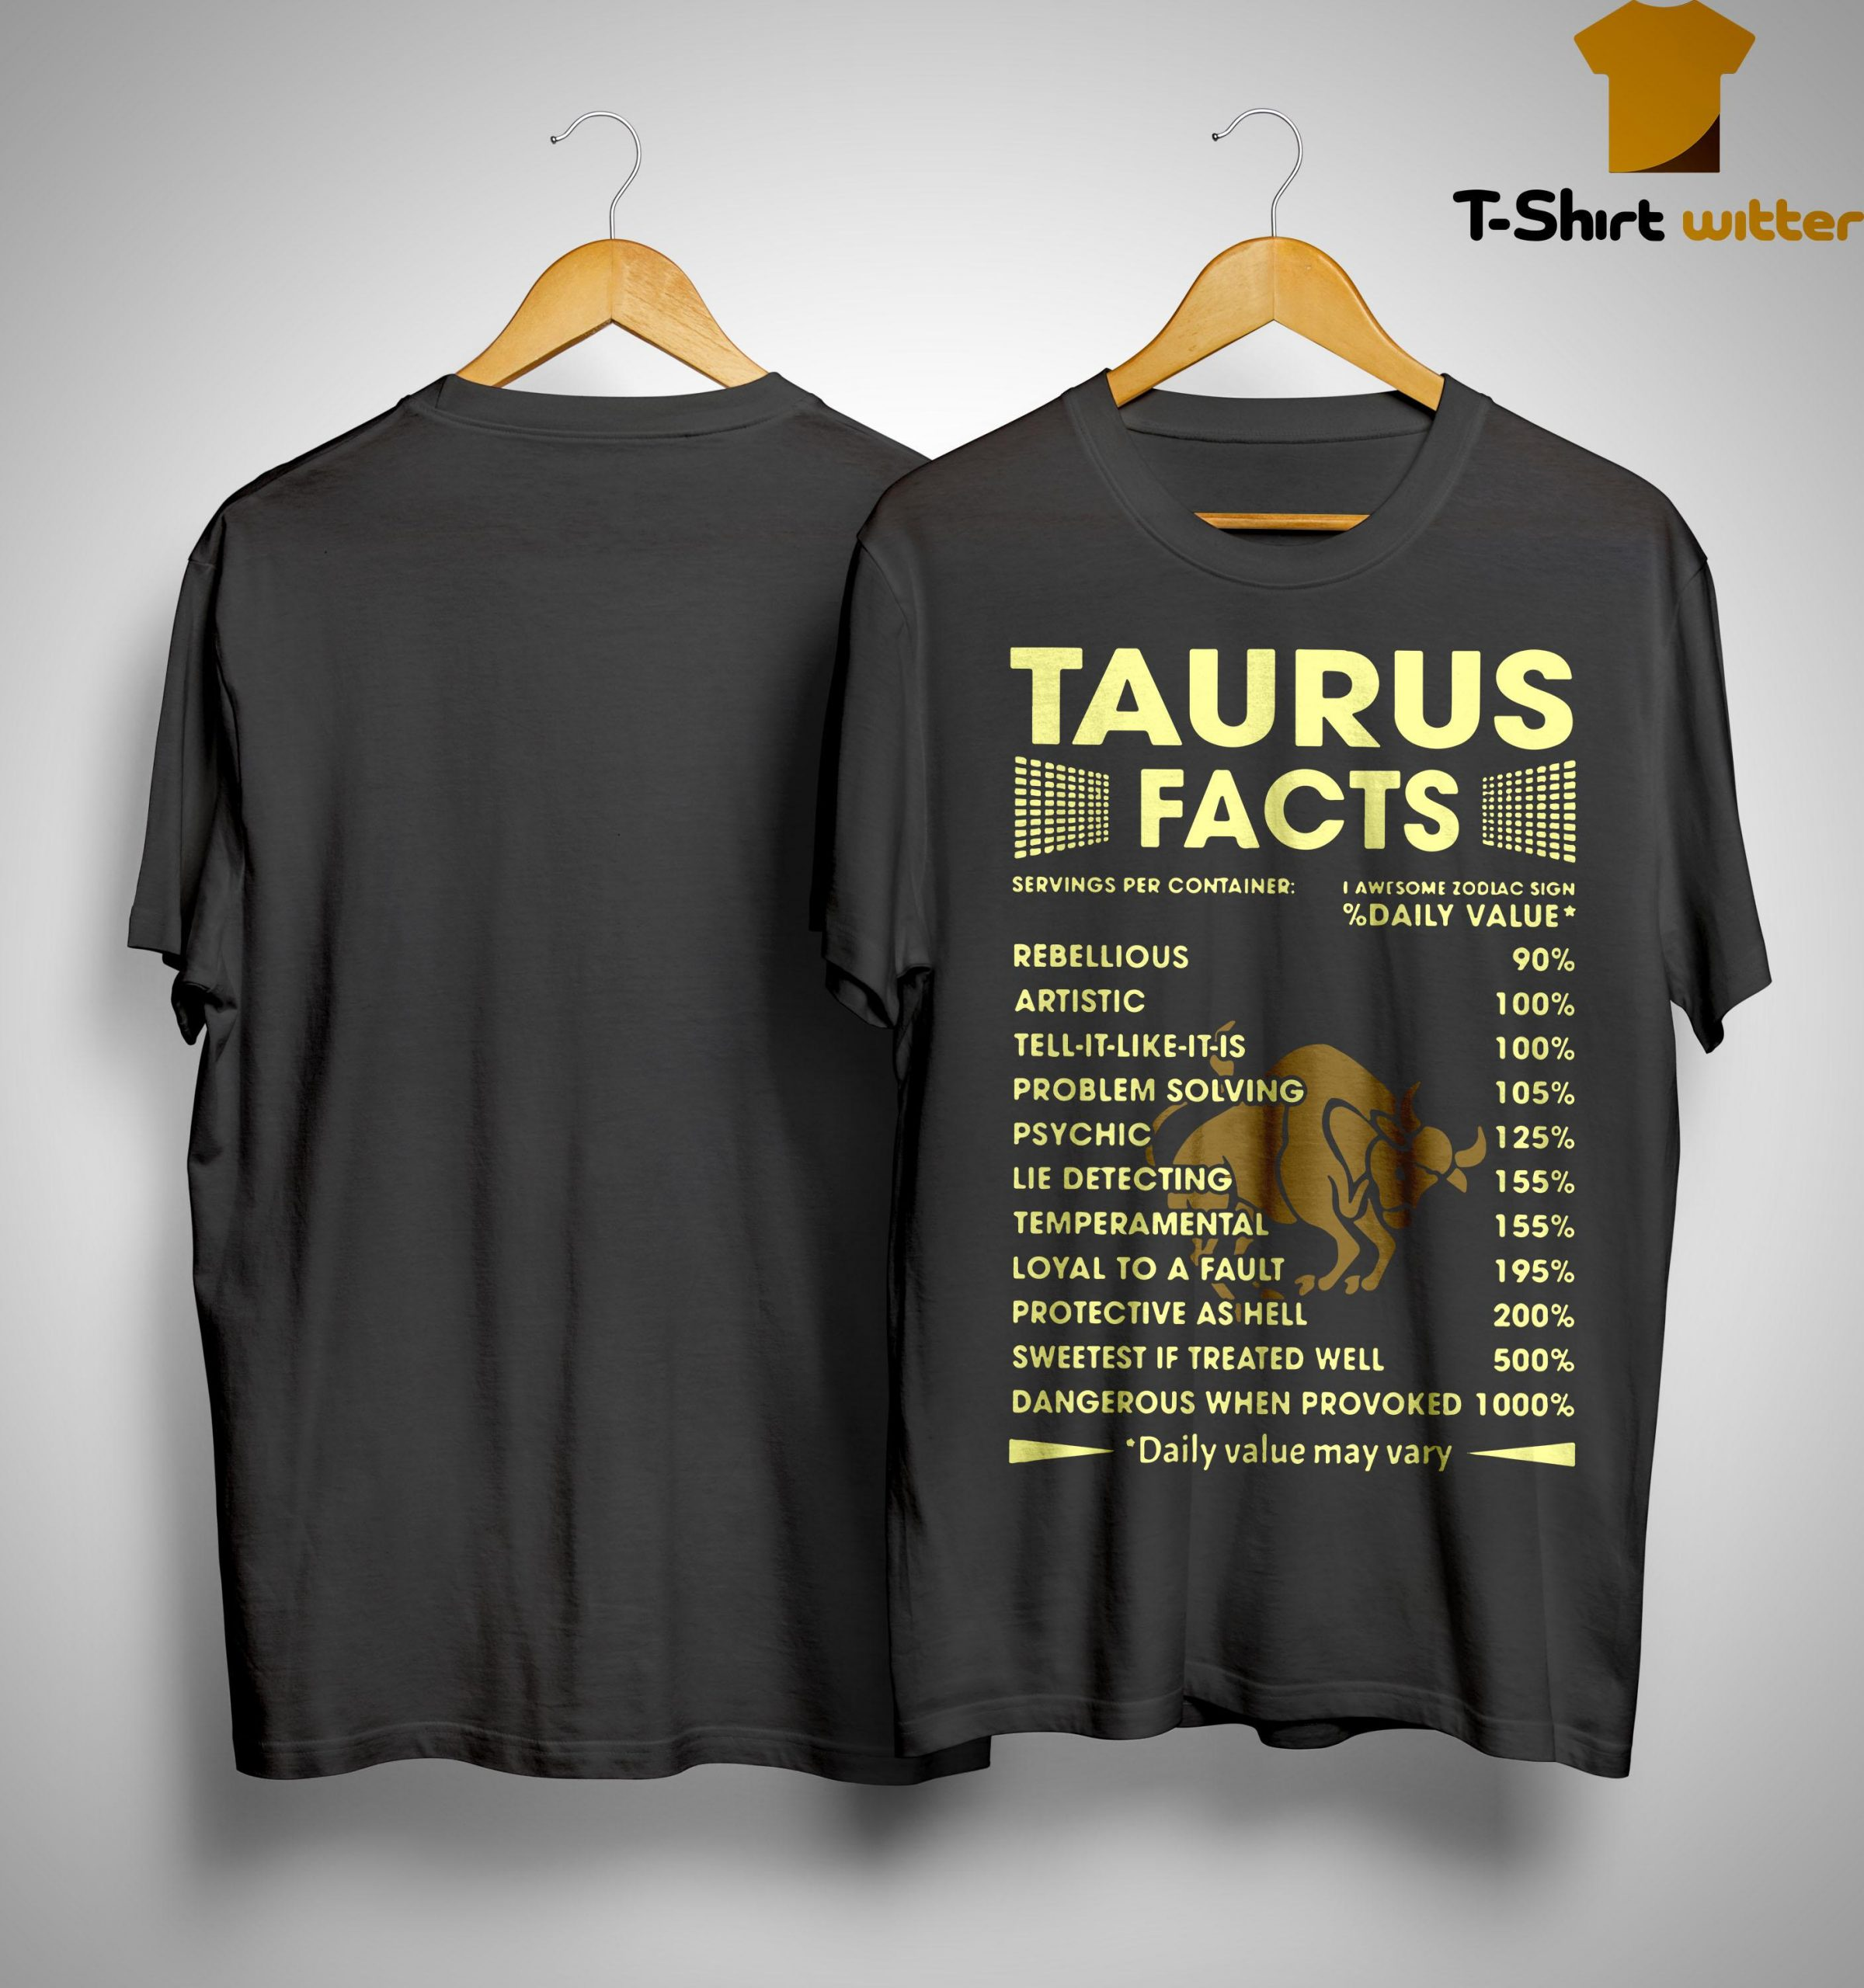 Taurus Facts Servings Per Containers I Awesome Zodiac Sign Shirt